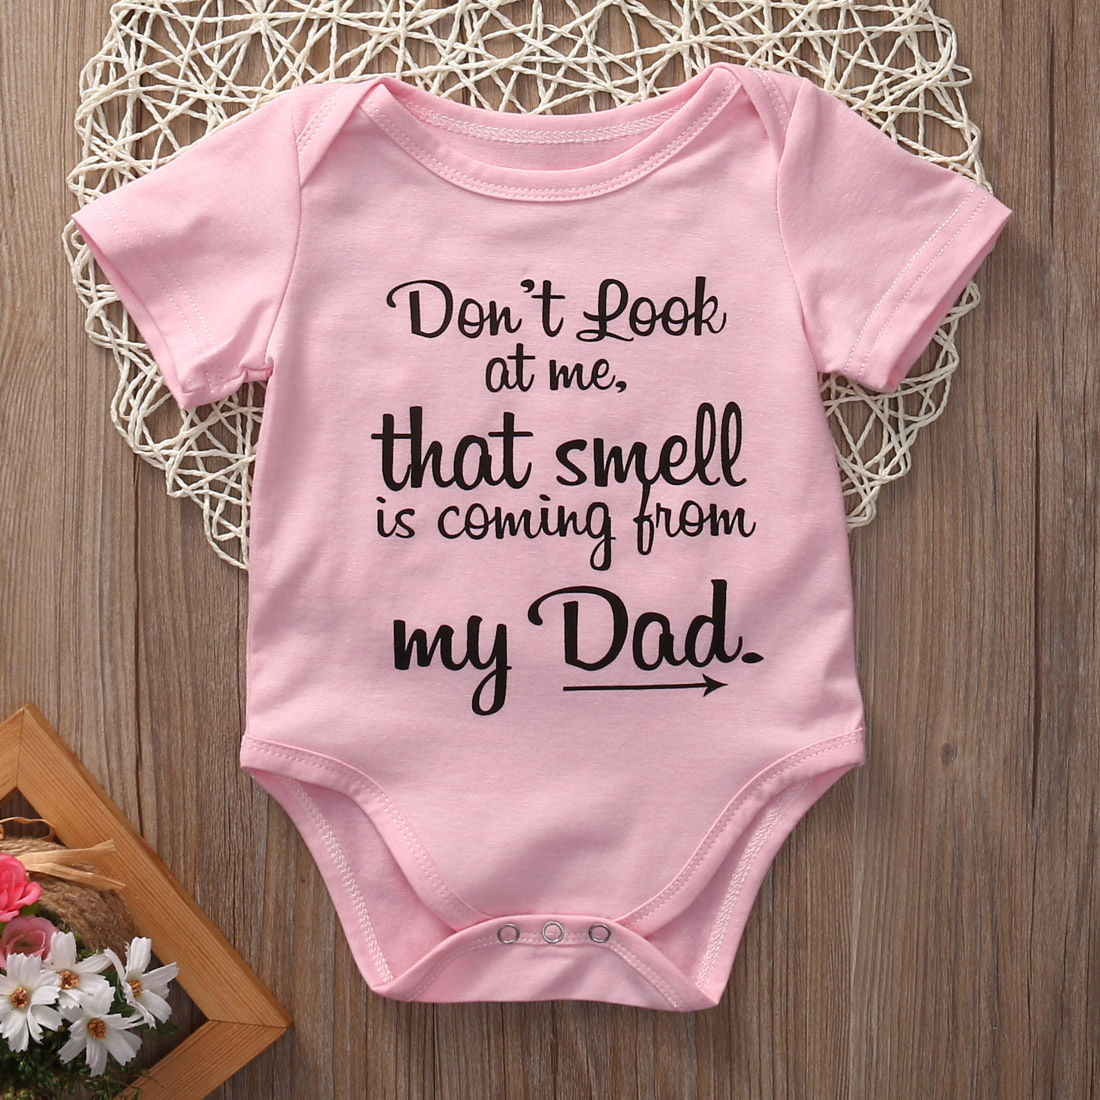 f8853f1877e1d Cotton Toddler Infant Baby Girls Clothing Bodysuit Short Sleeve Letter Cute  Jumpsuit Clothes Baby Girl Outfits 0 18M-in Bodysuits from Mother   Kids on  ...